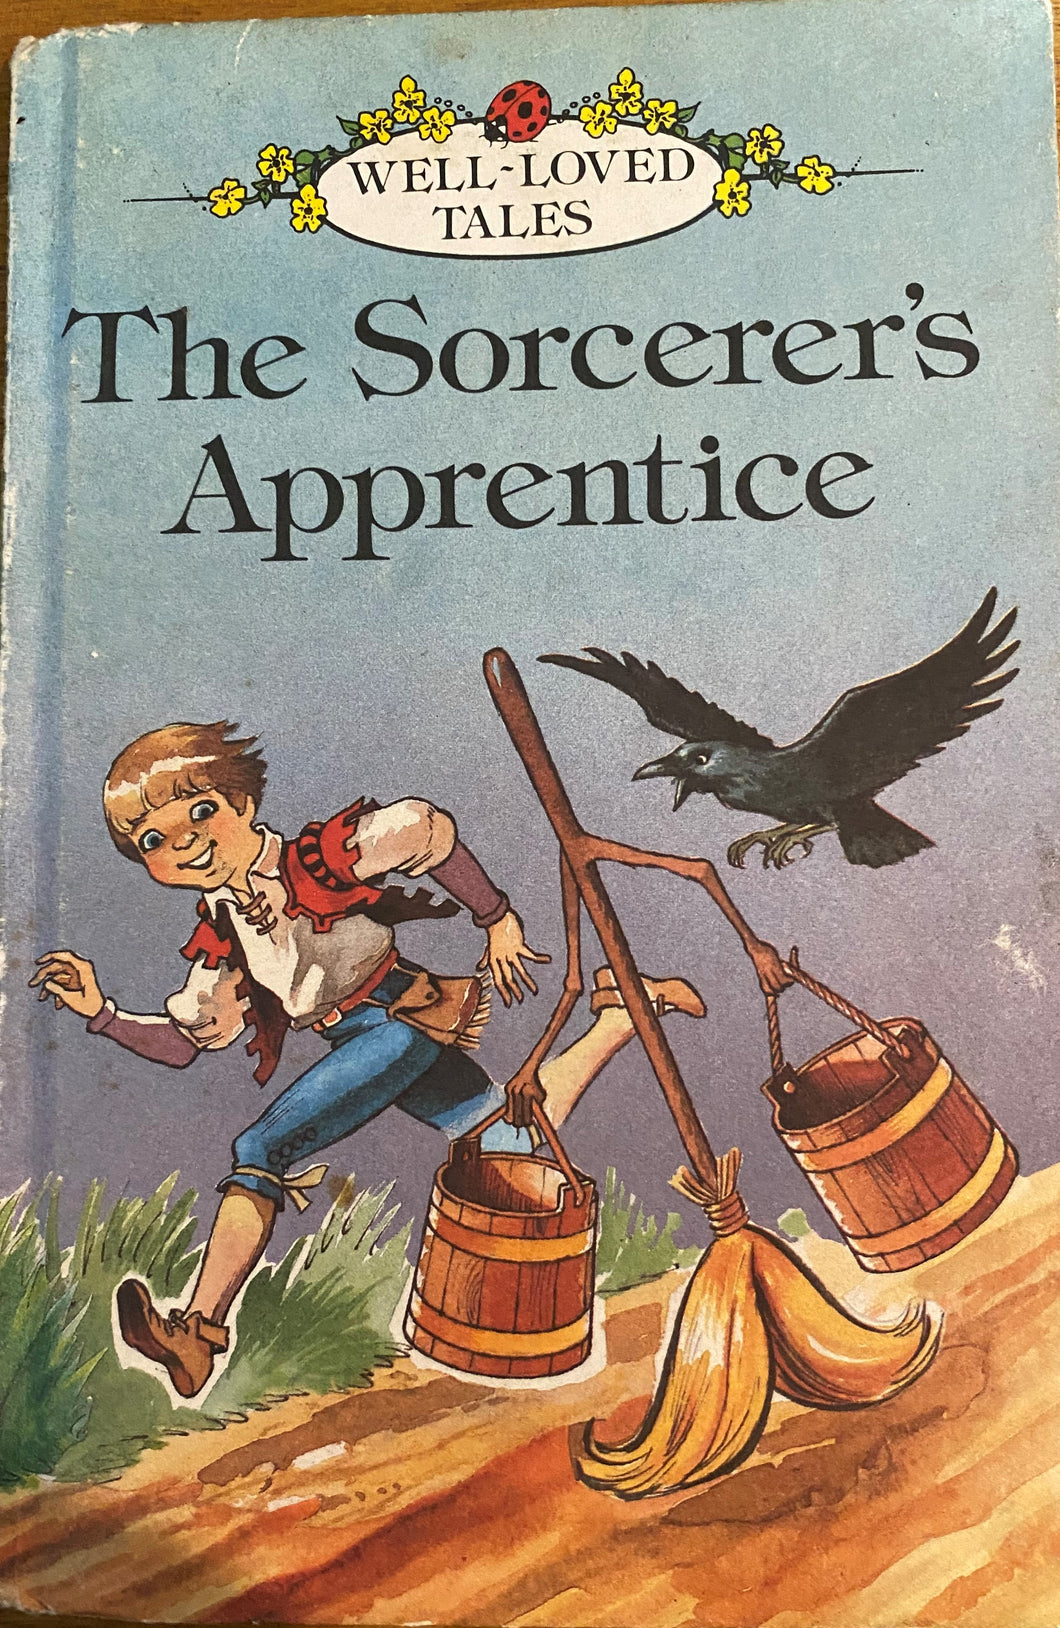 Well Loved tales: The Sorcerer's Apprentice (1 July 1982 - 31 December 1983)